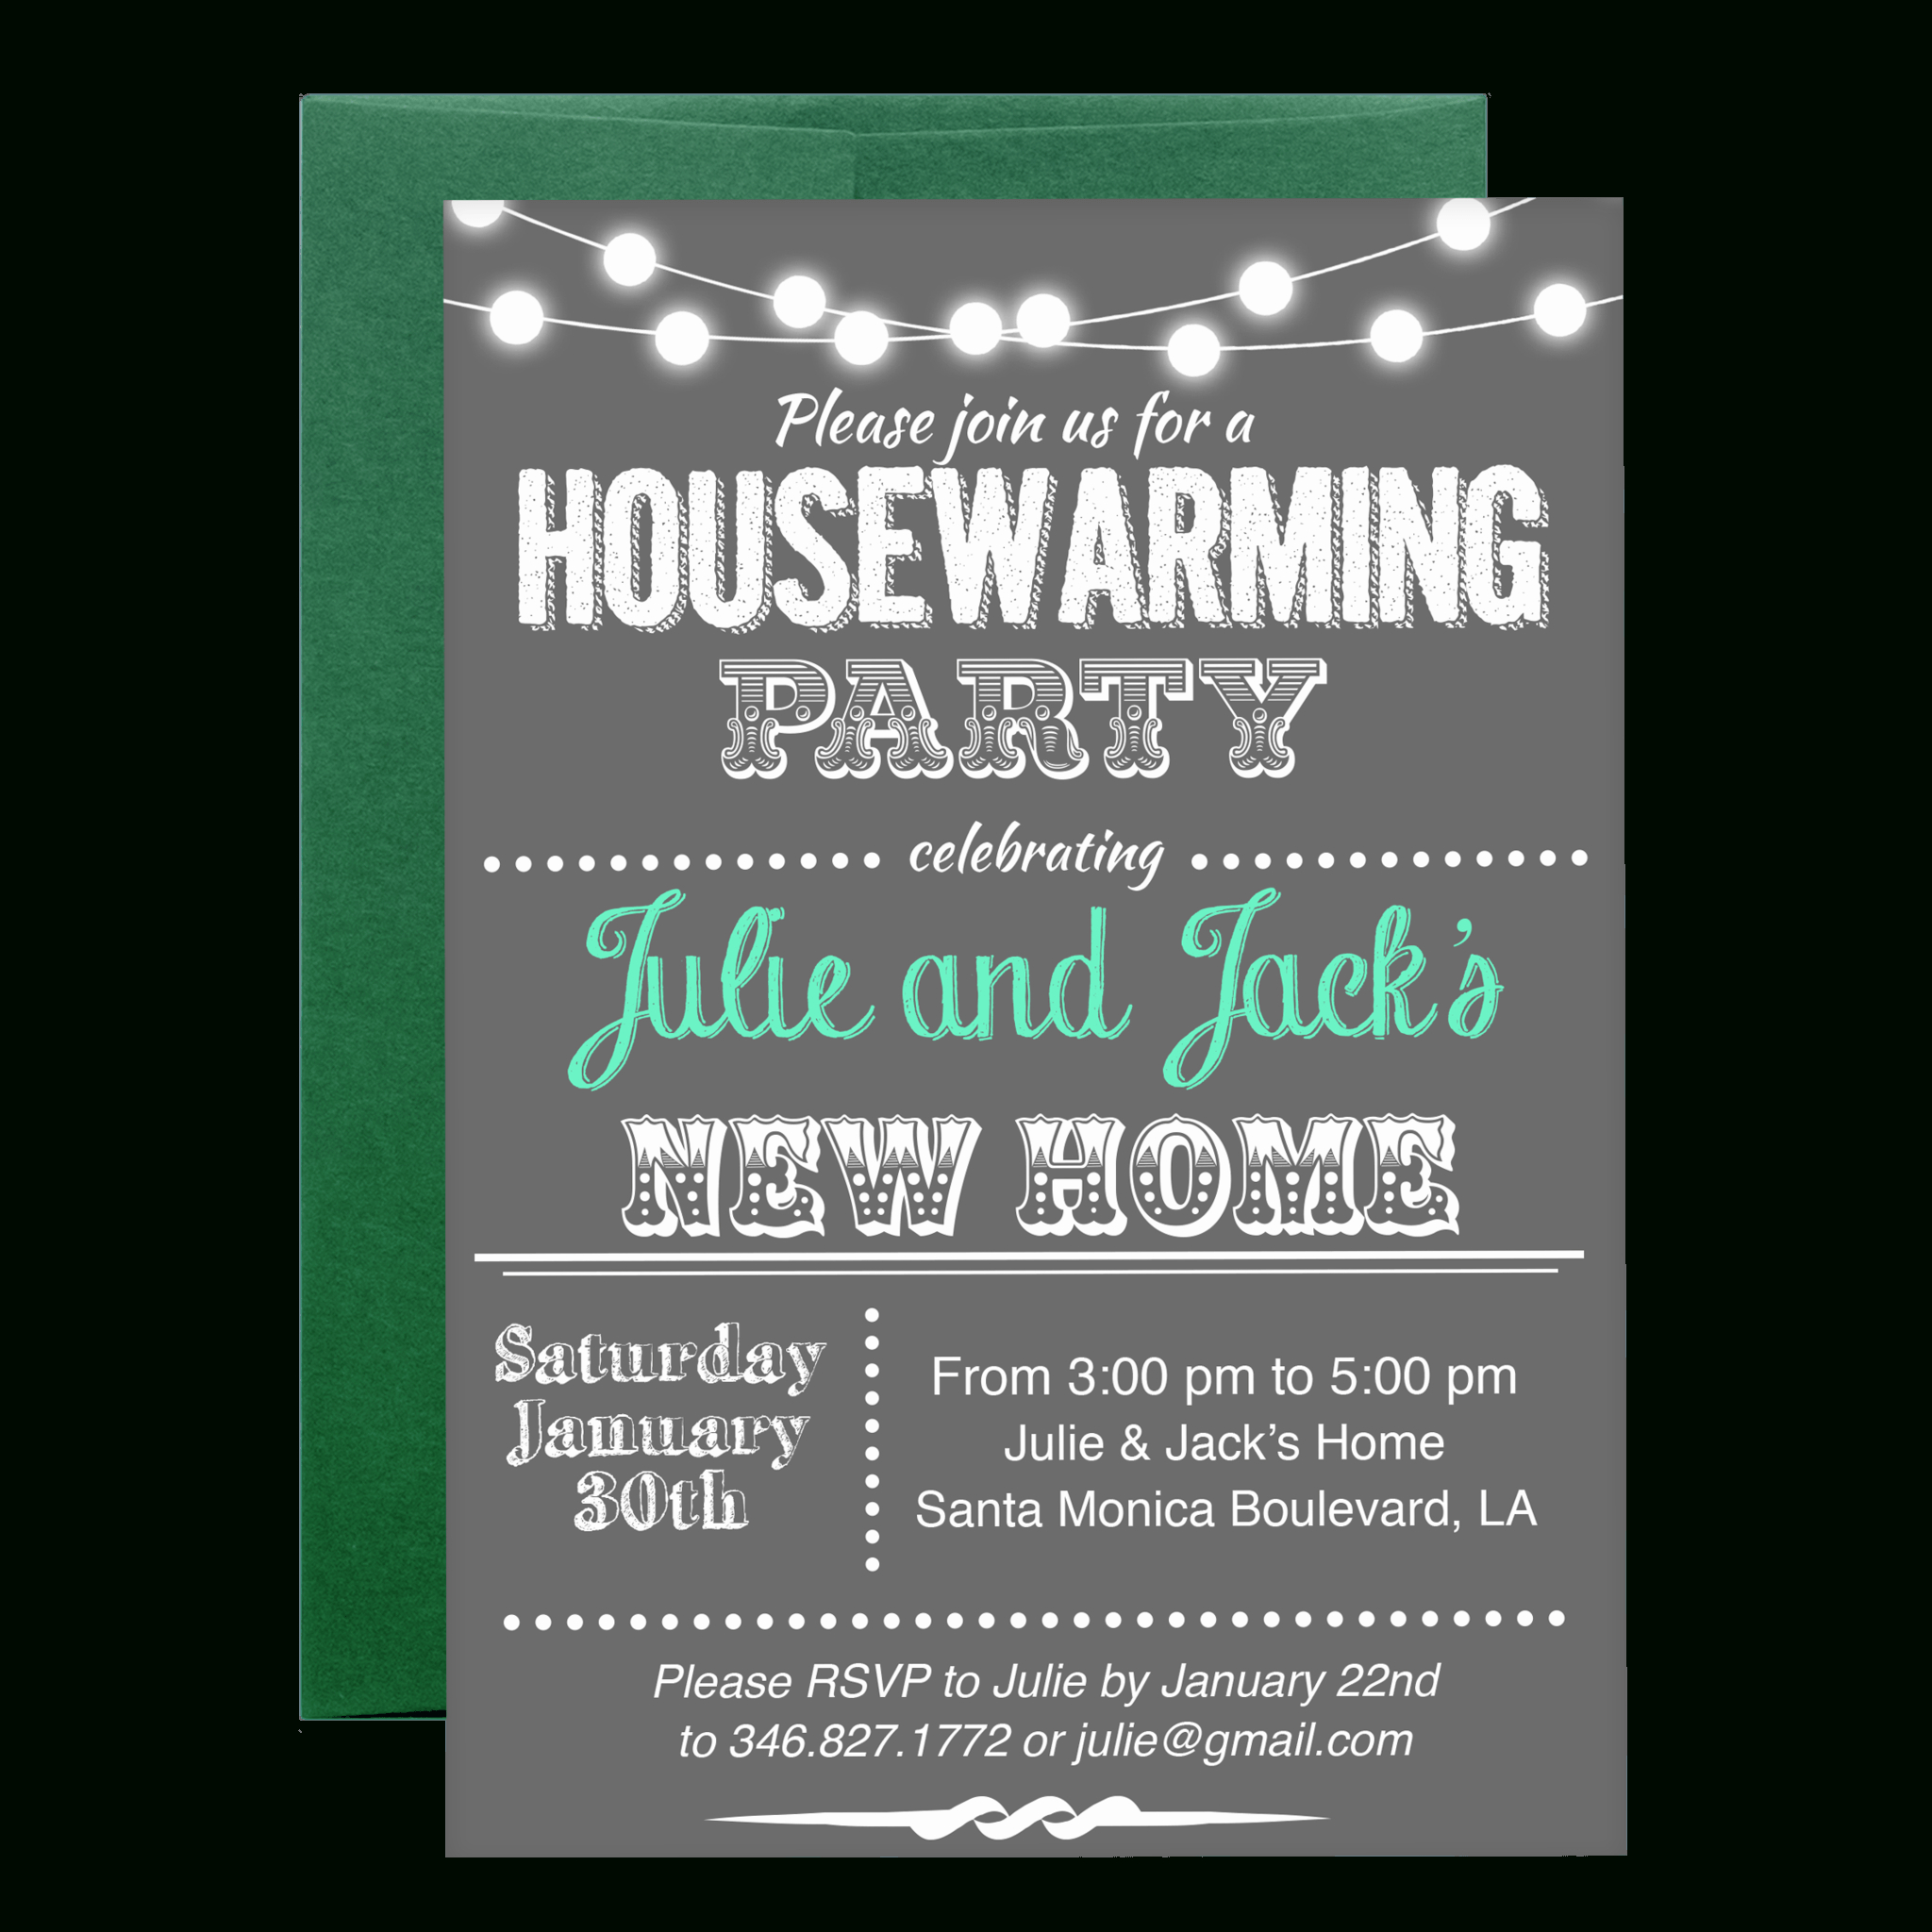 008 Housewarming Party Invitation Template Free Perfect For Free Housewarming Invitation Card Template